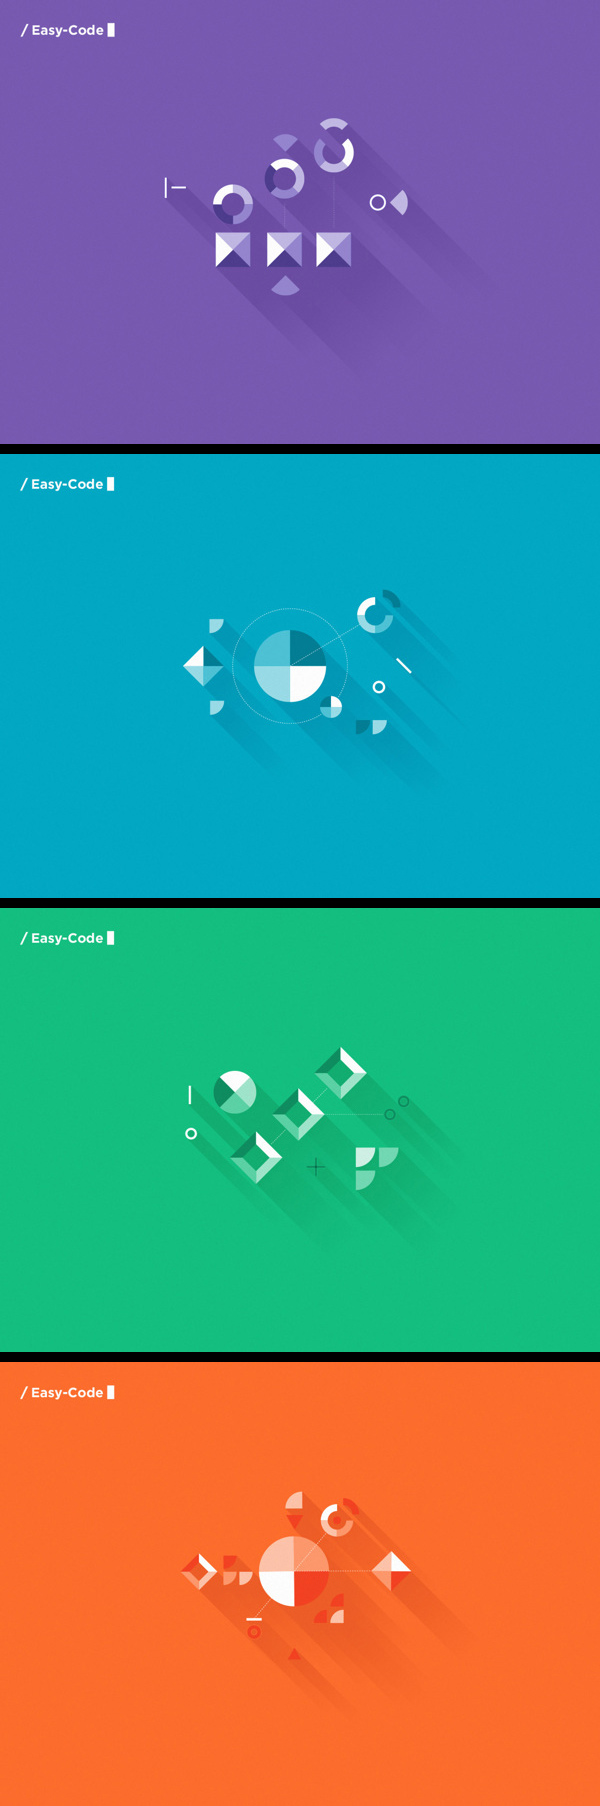 inspirations graphiques graphisme Tatalab   / Easy-Code_